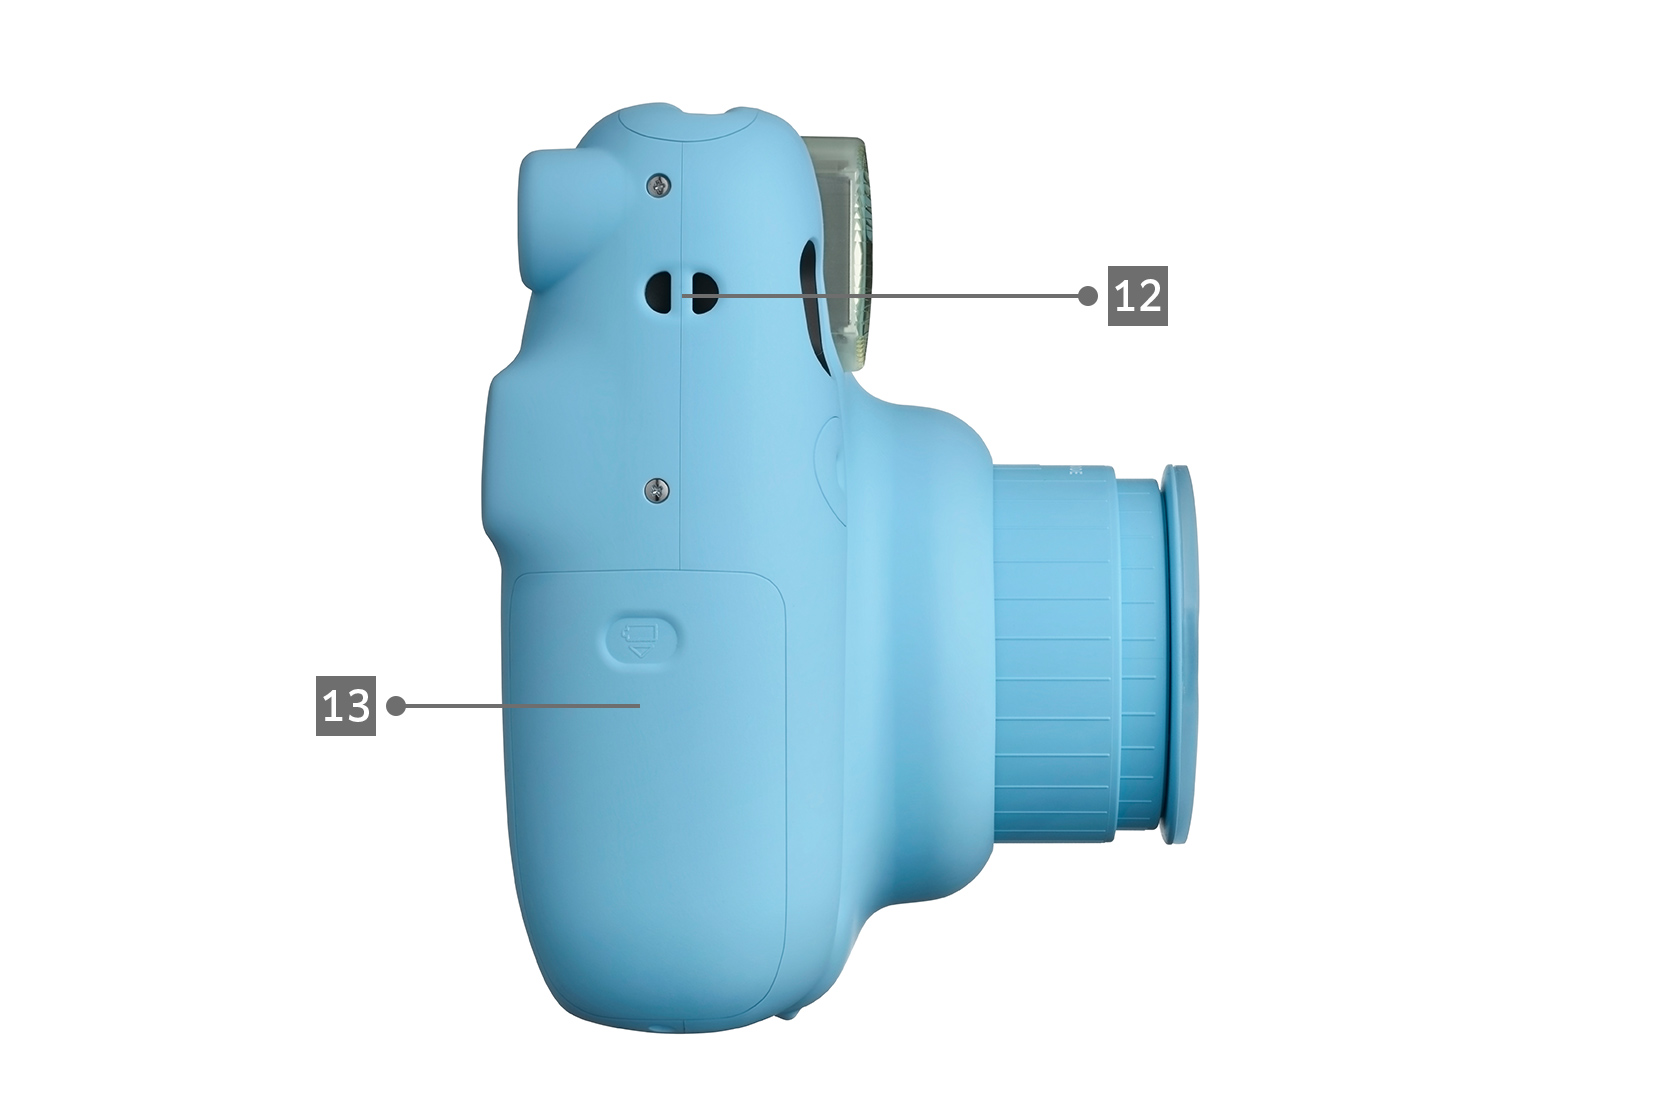 Side view of baby blue Mini 11 camera